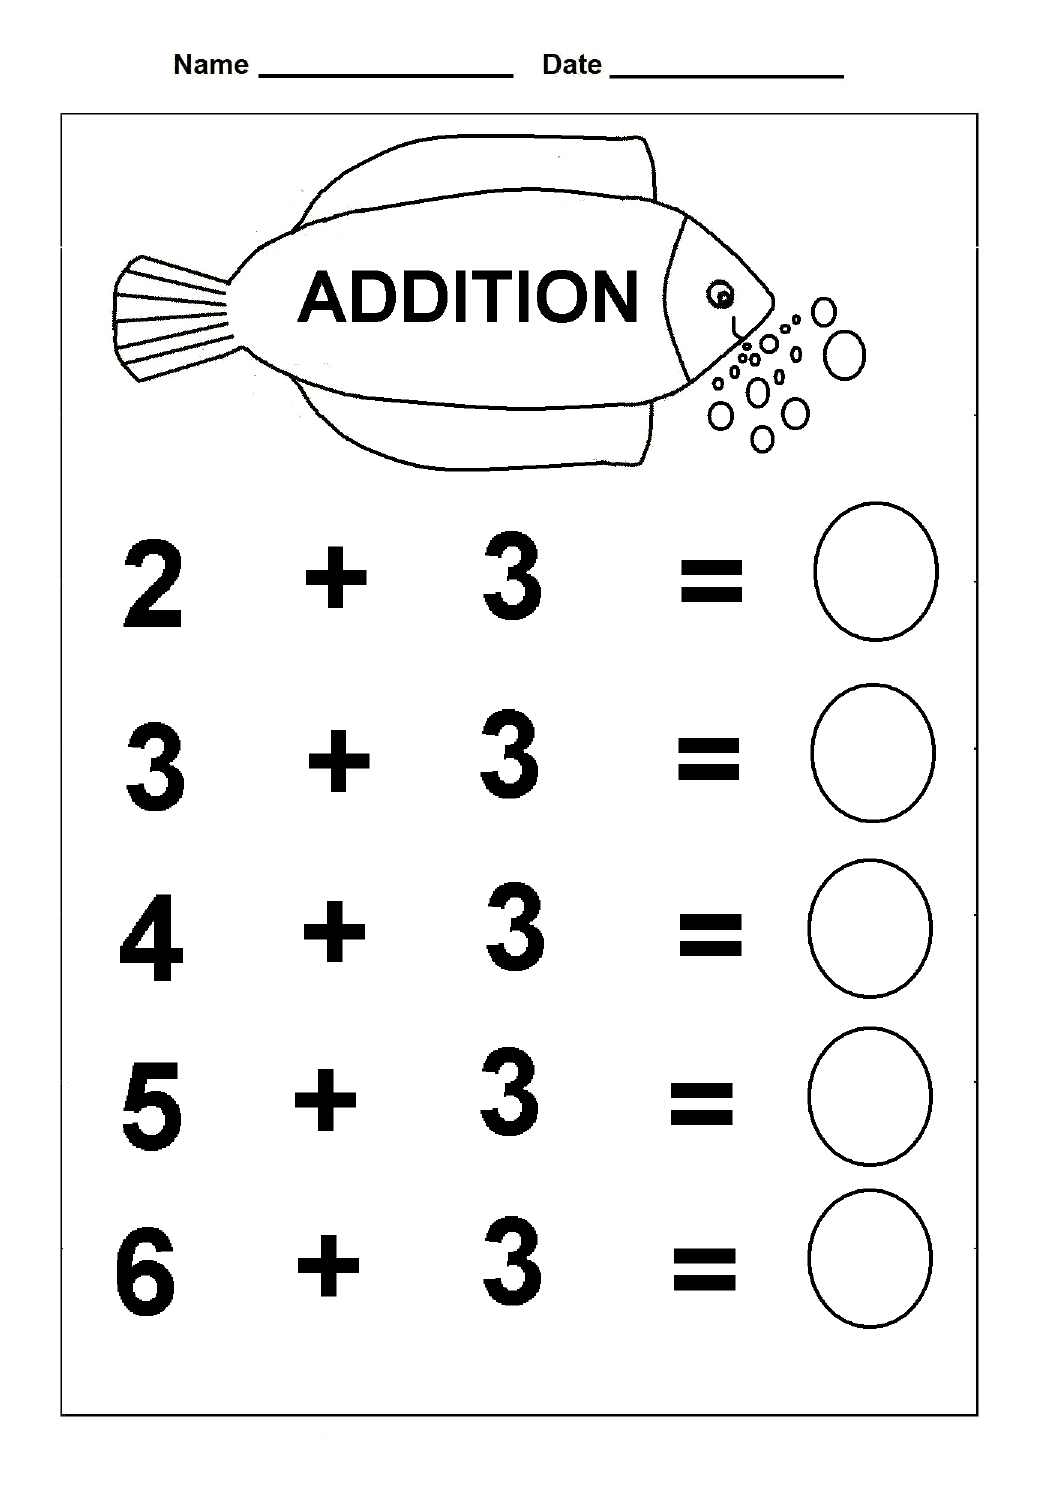 Worksheets Simple Addition Math Worksheets simple addition kindergarten math practice worksheets